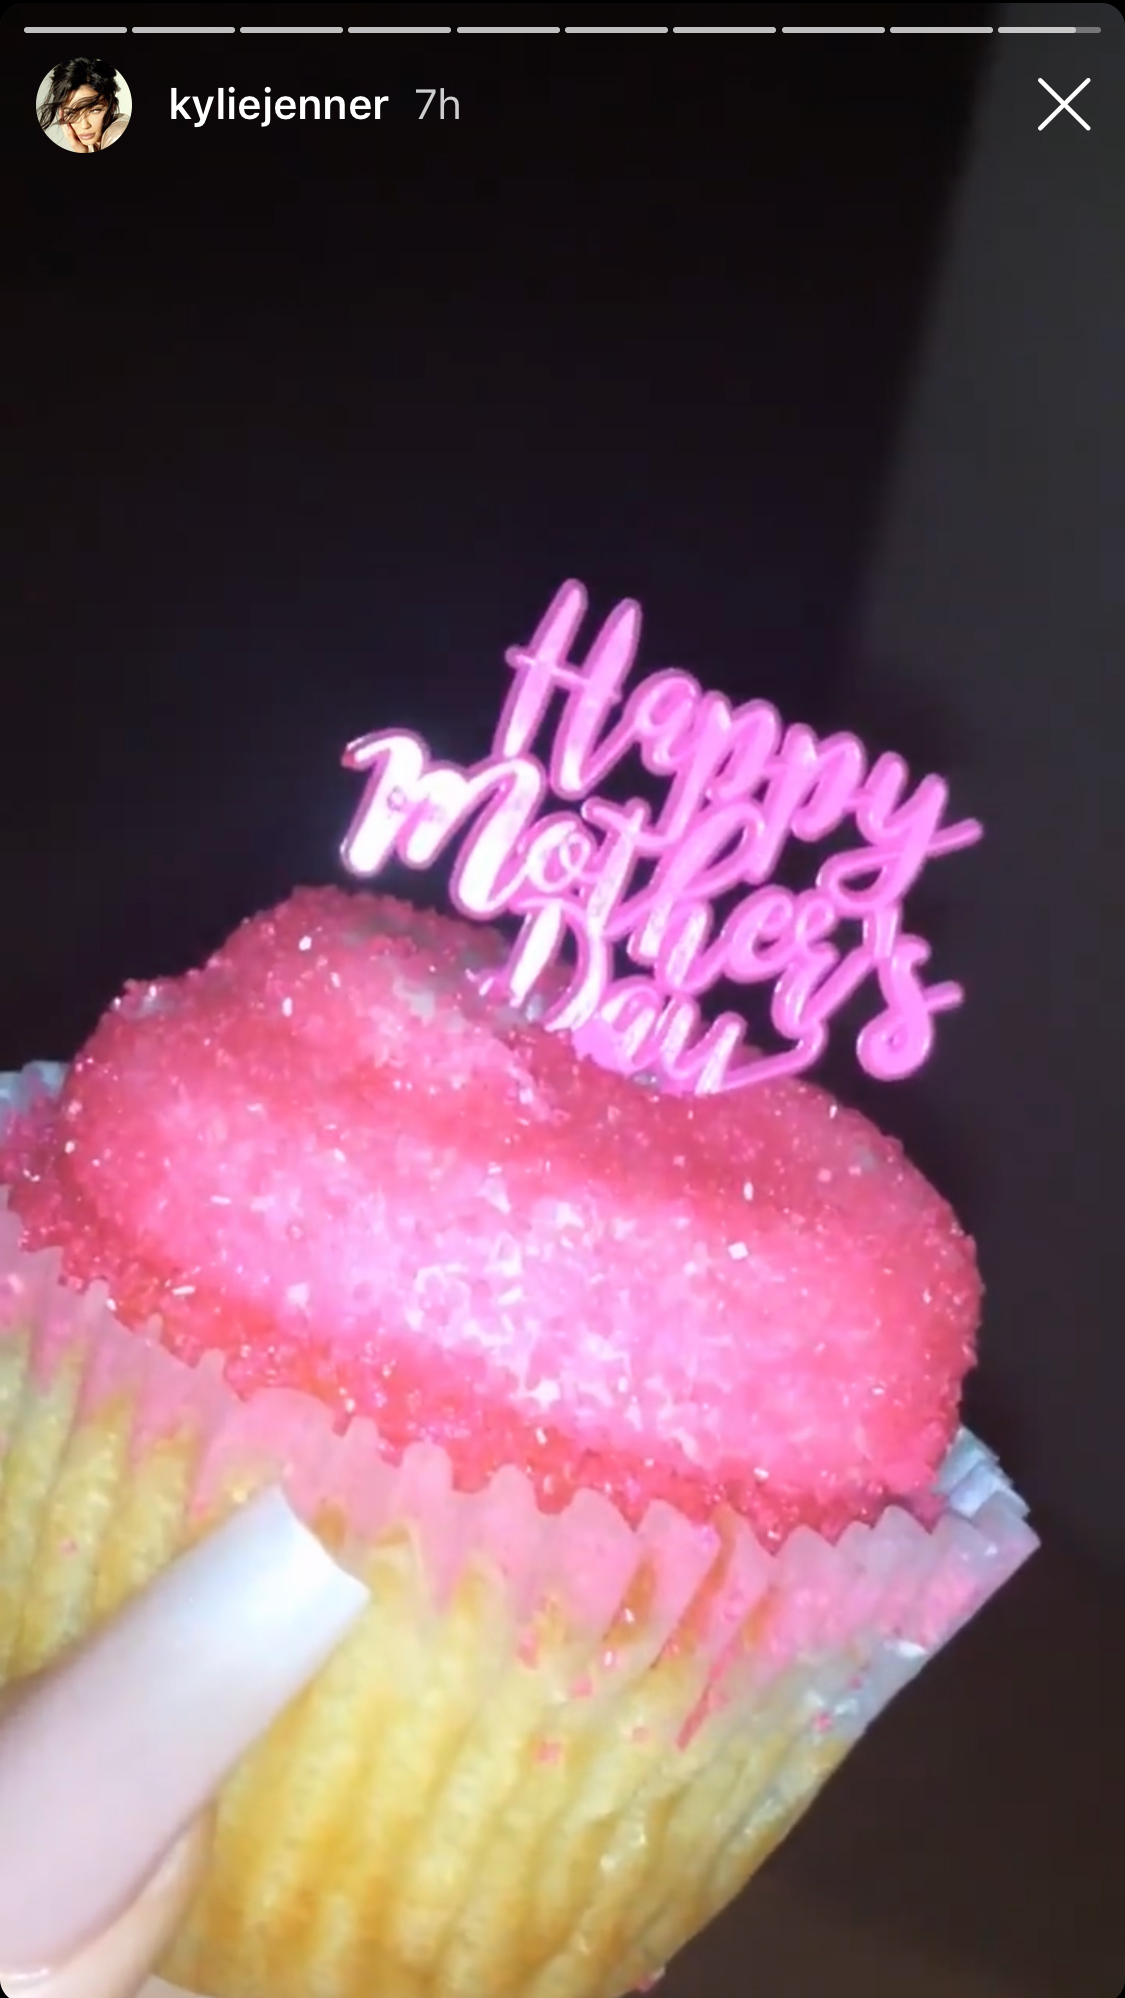 "Mothers' Day Meals - The Kylie Cosmetics founder, who shares 15-month old daughter Stormi Webster with boyfriend Travis Scott , seemingly had a low-key celebration to mark her second Mother's Day. The Keeping Up With the Kardashians star took to her Instagram Stories to give her followers a close-up look at a cute cupcake that was decorated with pink icing, matching sprinkles and a coordinating ""Happy Mother's Day"" decoration."